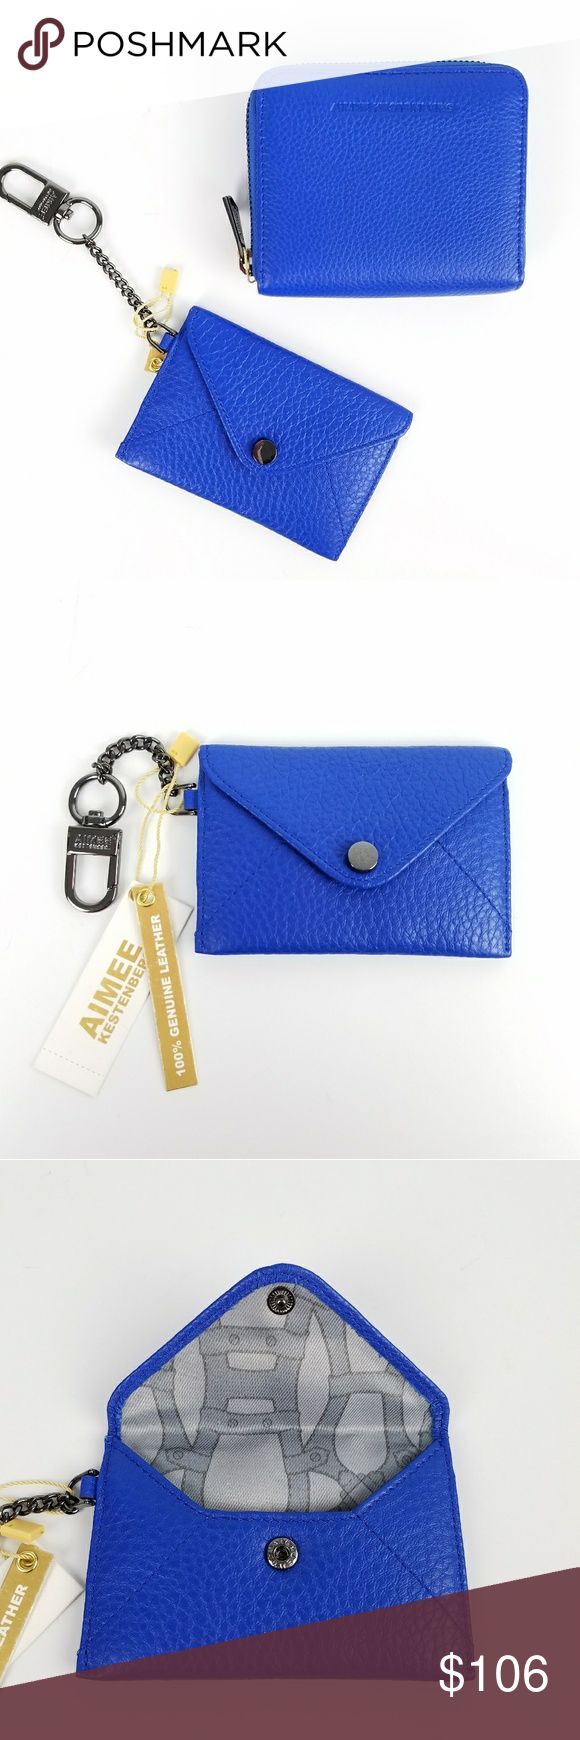 """Aimee Kestenberg Brixton Ashley Wallets  Combo New With Tags  Listing is for BOTH the Ashley Pouch and Brixton Wallet in Lapis Blue with gunmetal accents  Ashley Pouch:  100% genuine leather The perfect size for credit cards & ID  Snap closure Dogclip to attach to your bag Embossed back logo 3""""H x 4.5""""W x .5""""D  Brixton Wallet: 100% Genuine leather  Zip Around closure Triple interior compartment Double credit card slots Embossed back logo  4.75""""H x 4""""W x 1""""D Aimee Kestenberg Bags Wallets"""